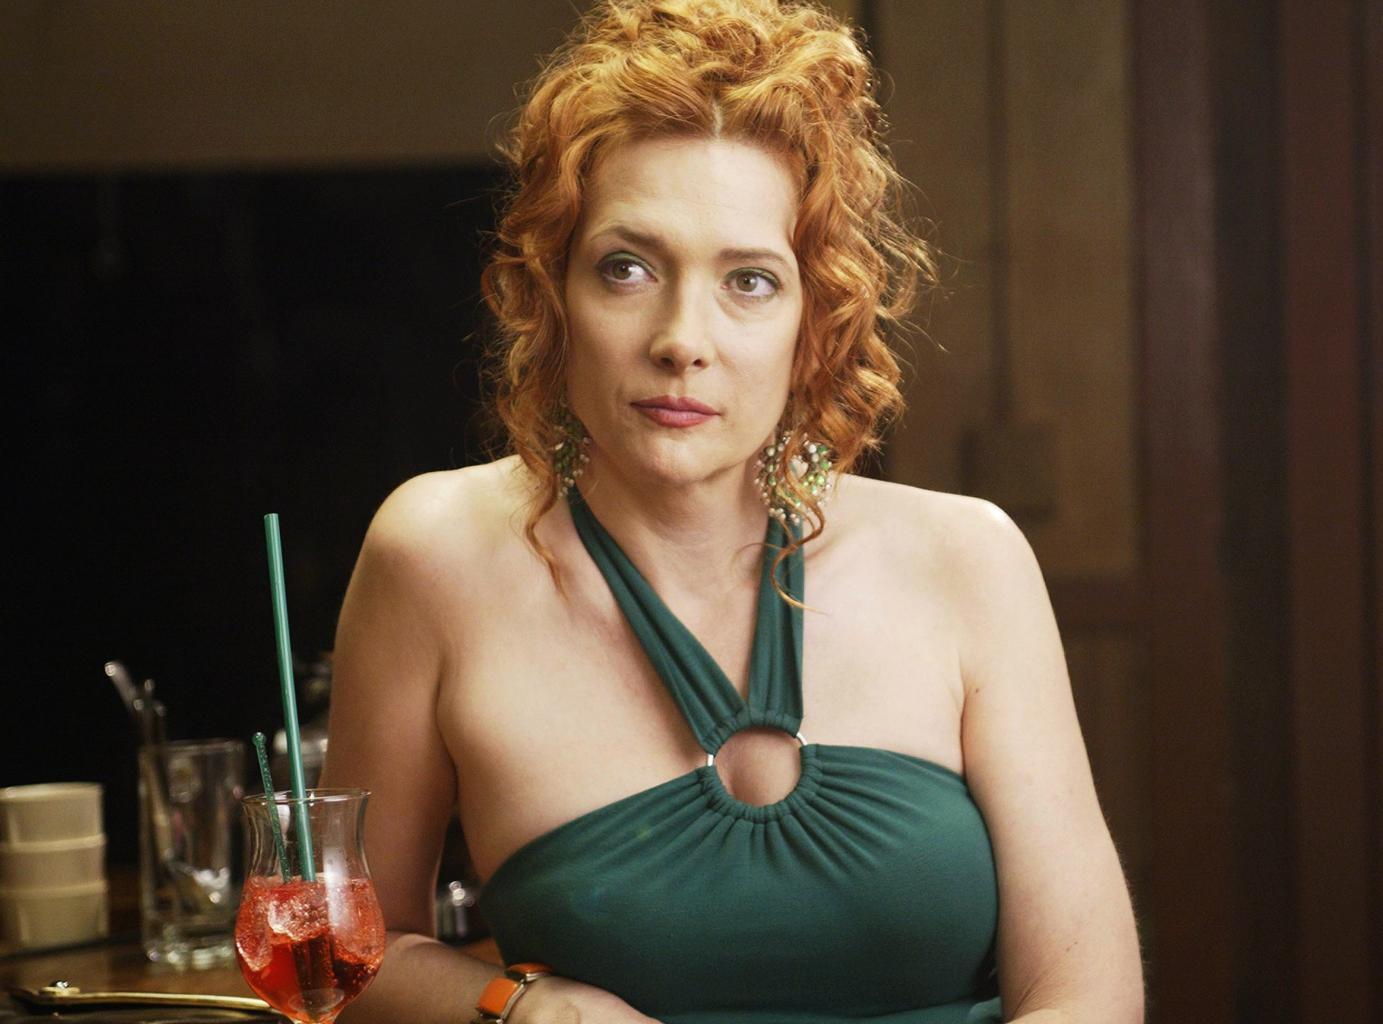 Dirty Rotten ScoundrelsActress Glenne Headly Dies at 63: Report